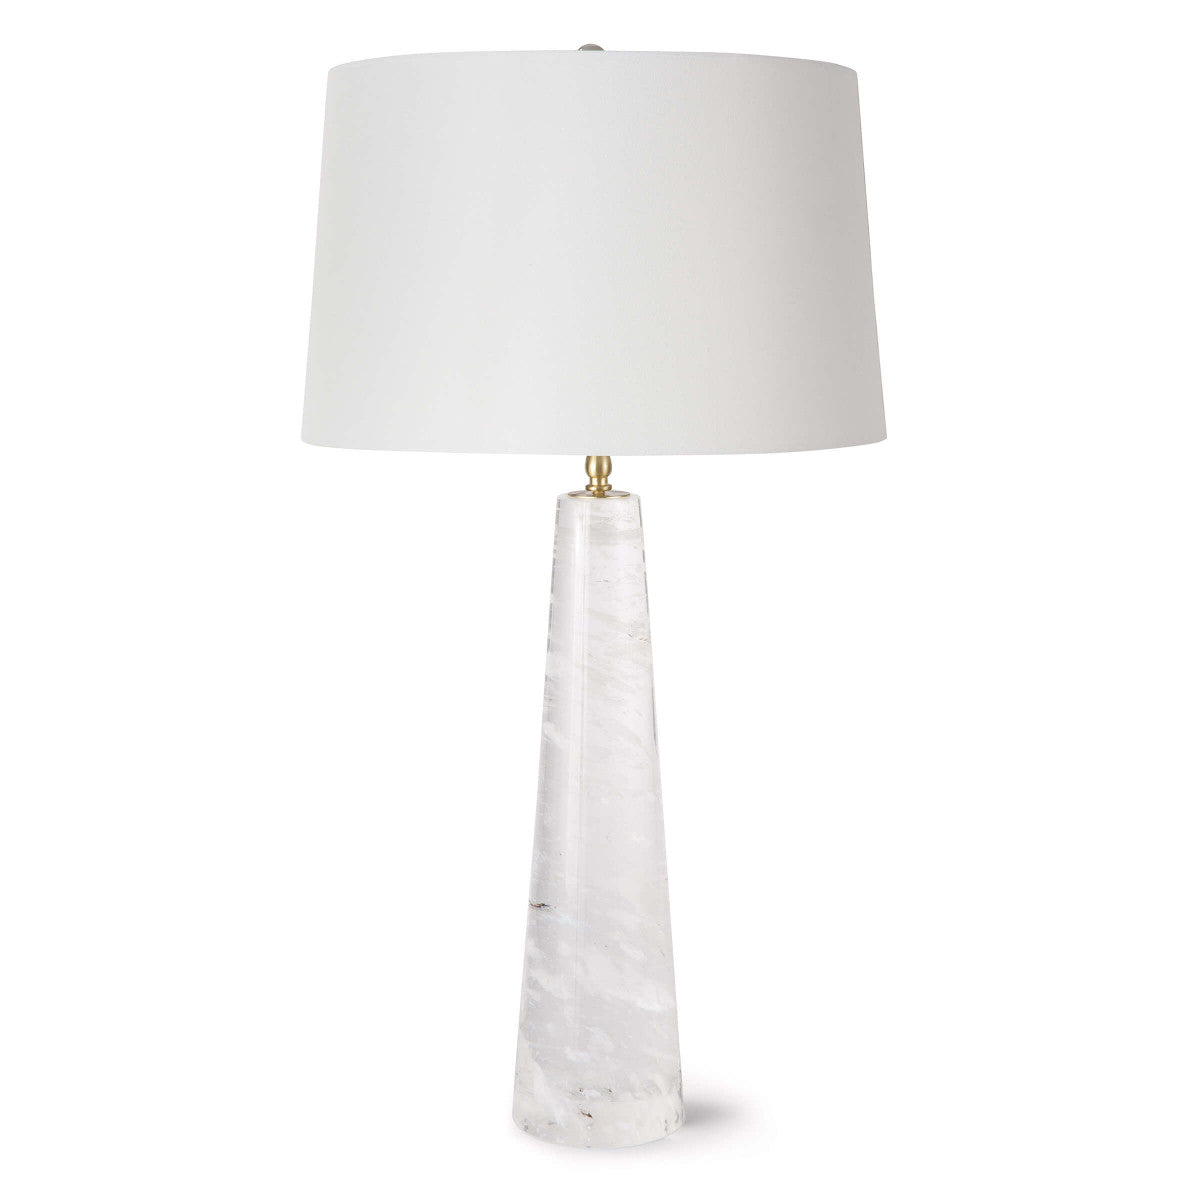 Odessa Crystal Table Lamp 13-1353